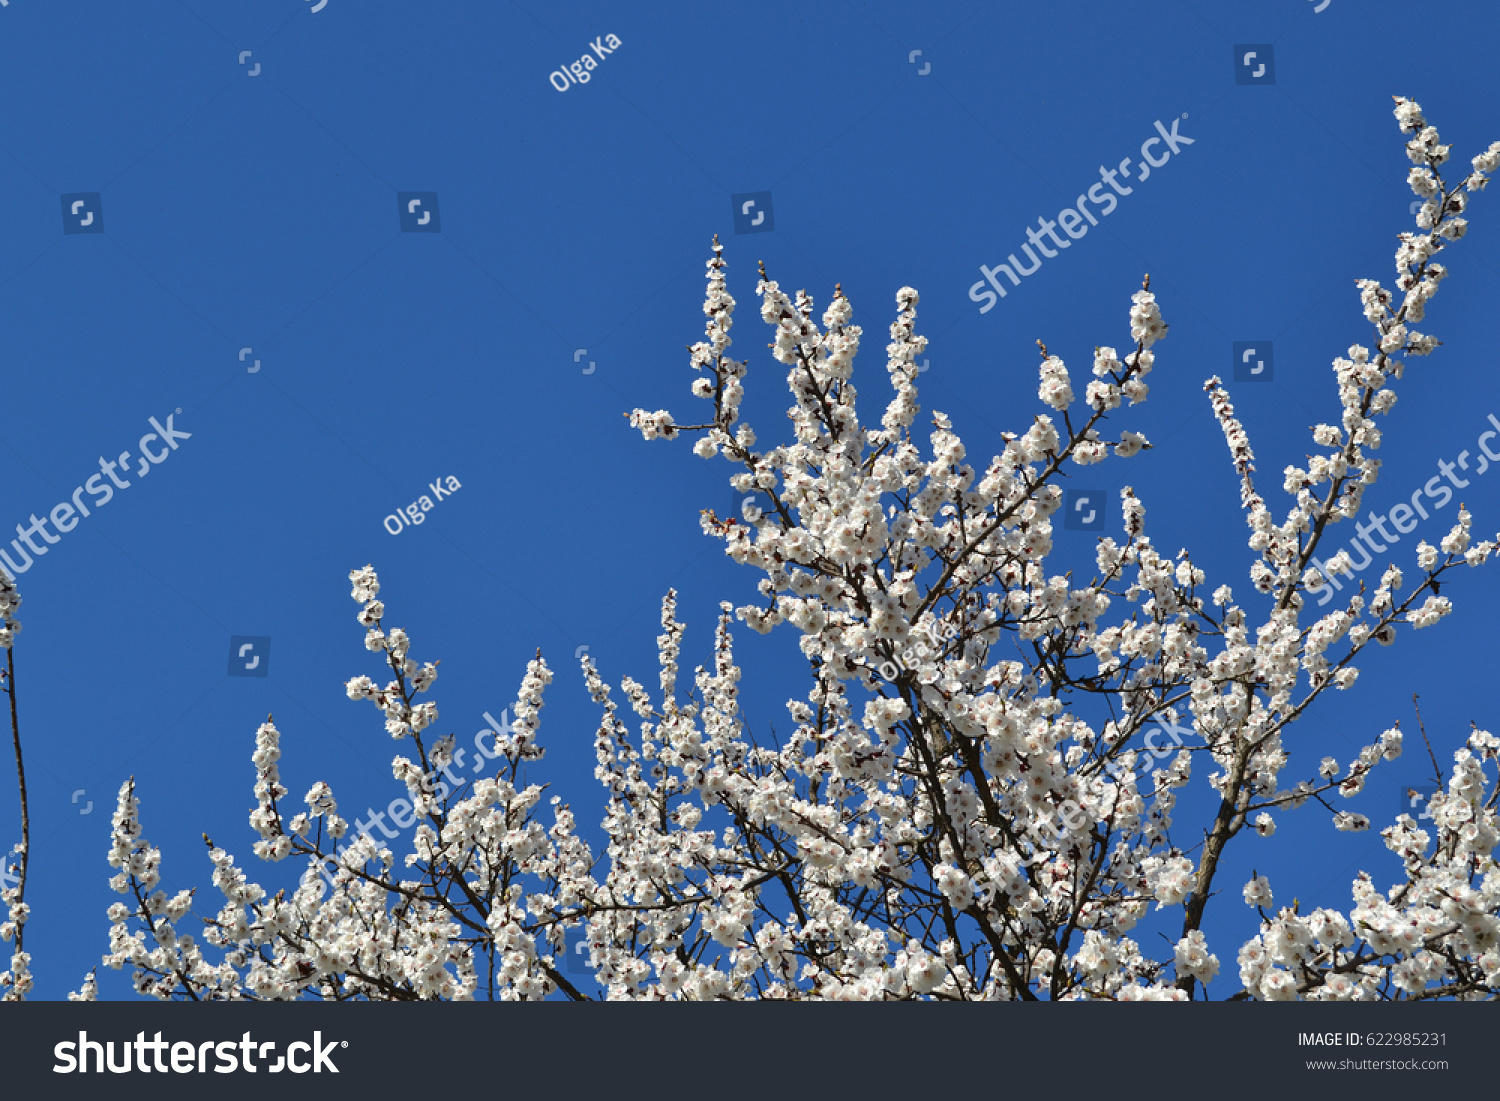 Flowering of trees in spring against a clear blue sky ez canvas izmirmasajfo